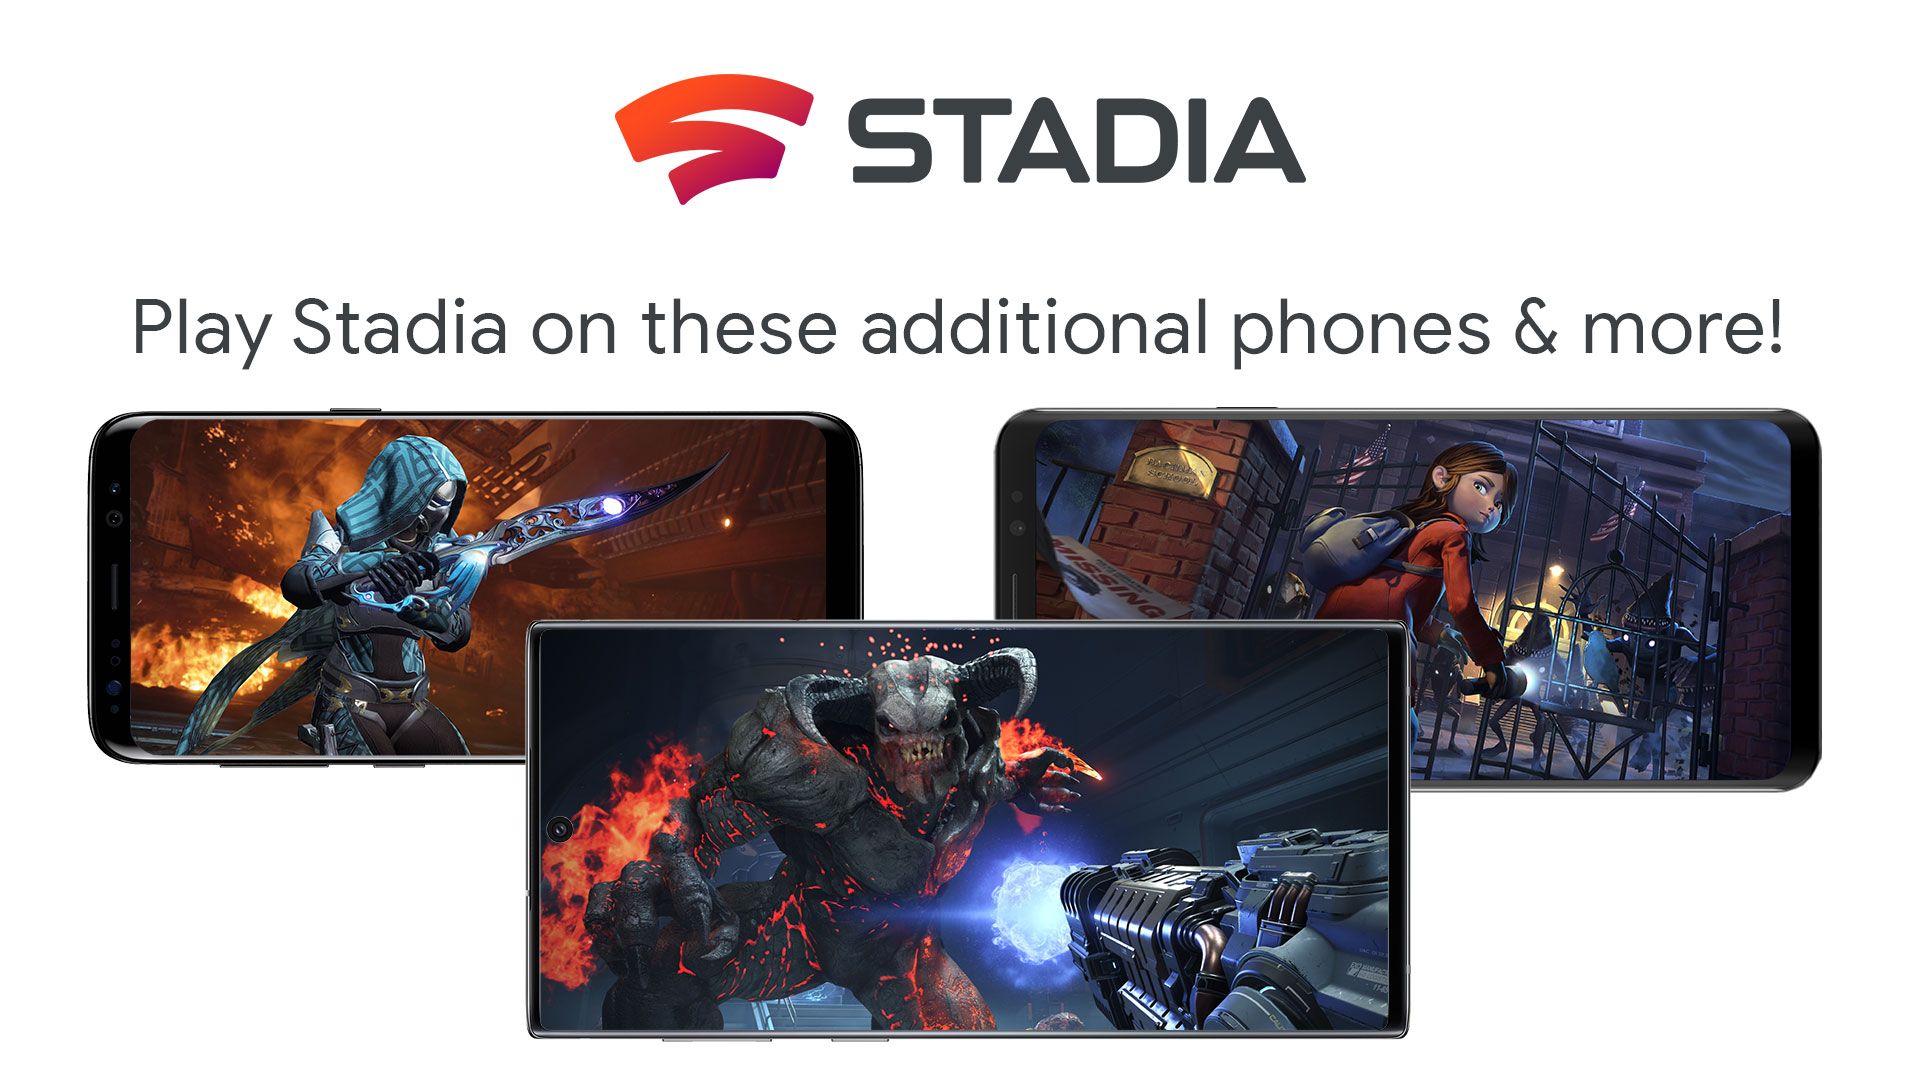 Stadia coming to latest Samsung Galaxy phones on Feb 20 - 9to5Google